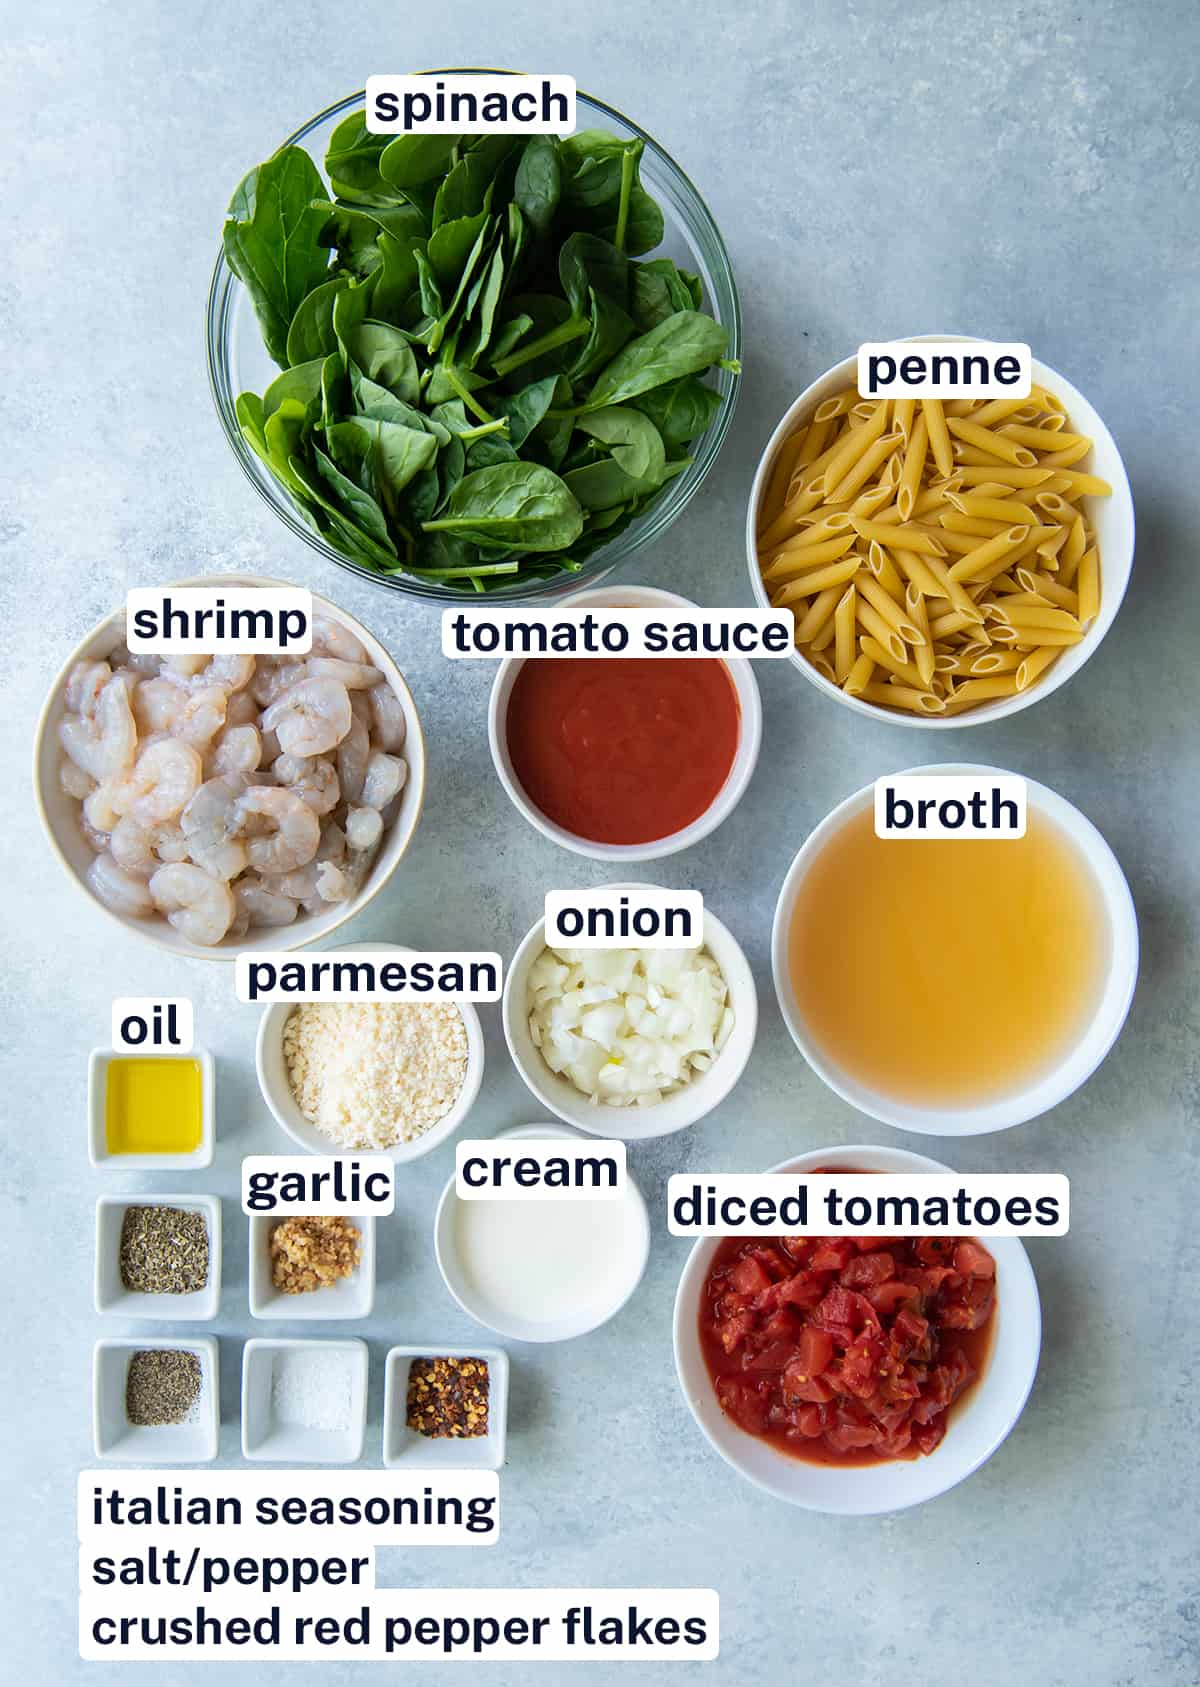 The ingredients for Shrimp and Spinach Pasta with overlay text.